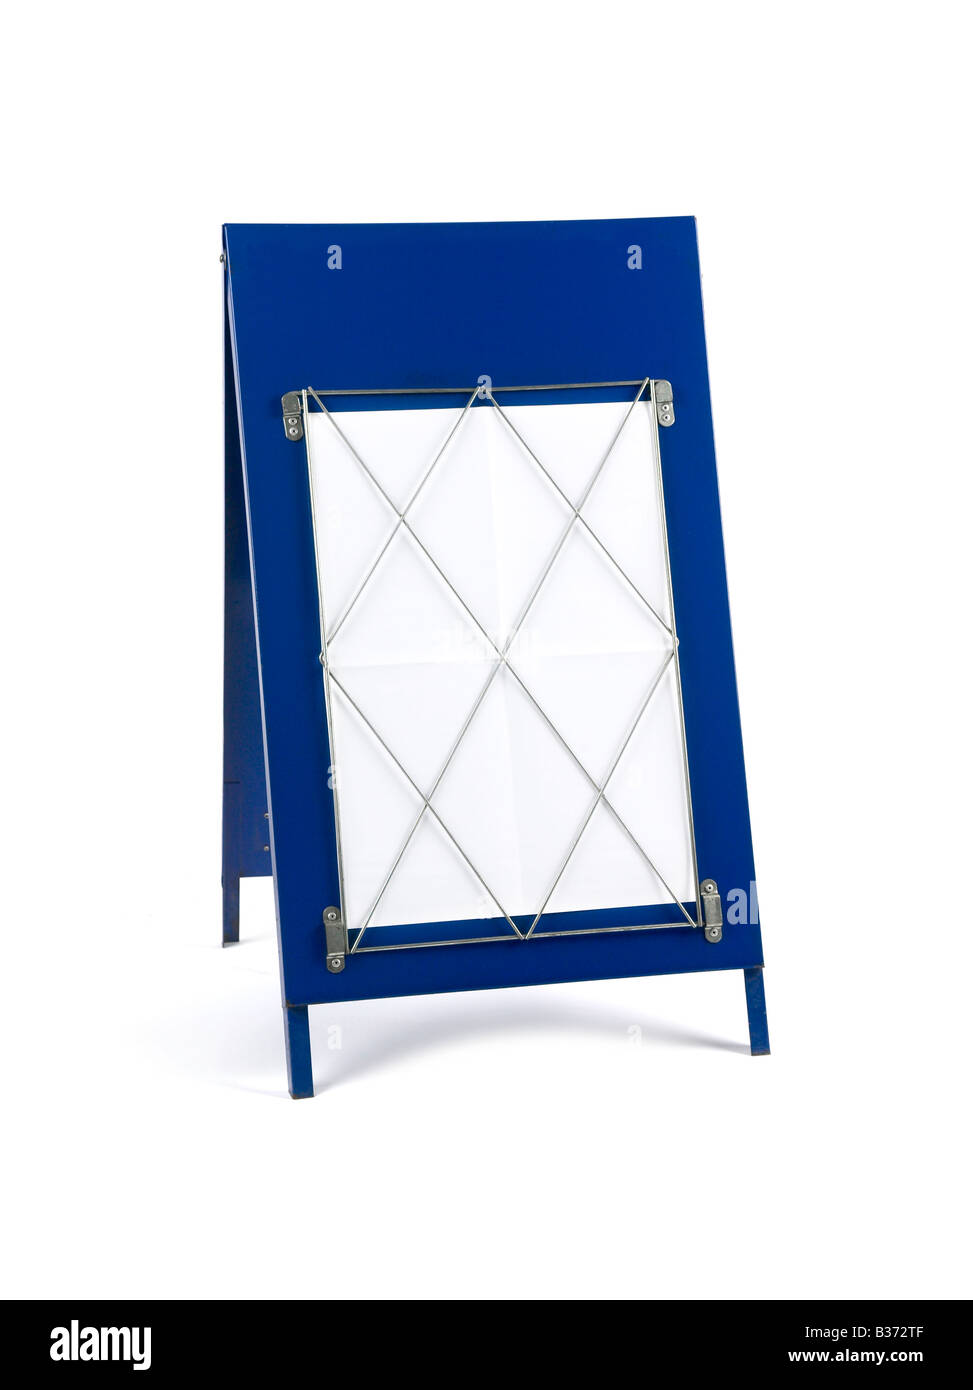 NEWS AGENTS BANNER HEADLINE 'A' BOARD WITH BLANK PAPER - Stock Image